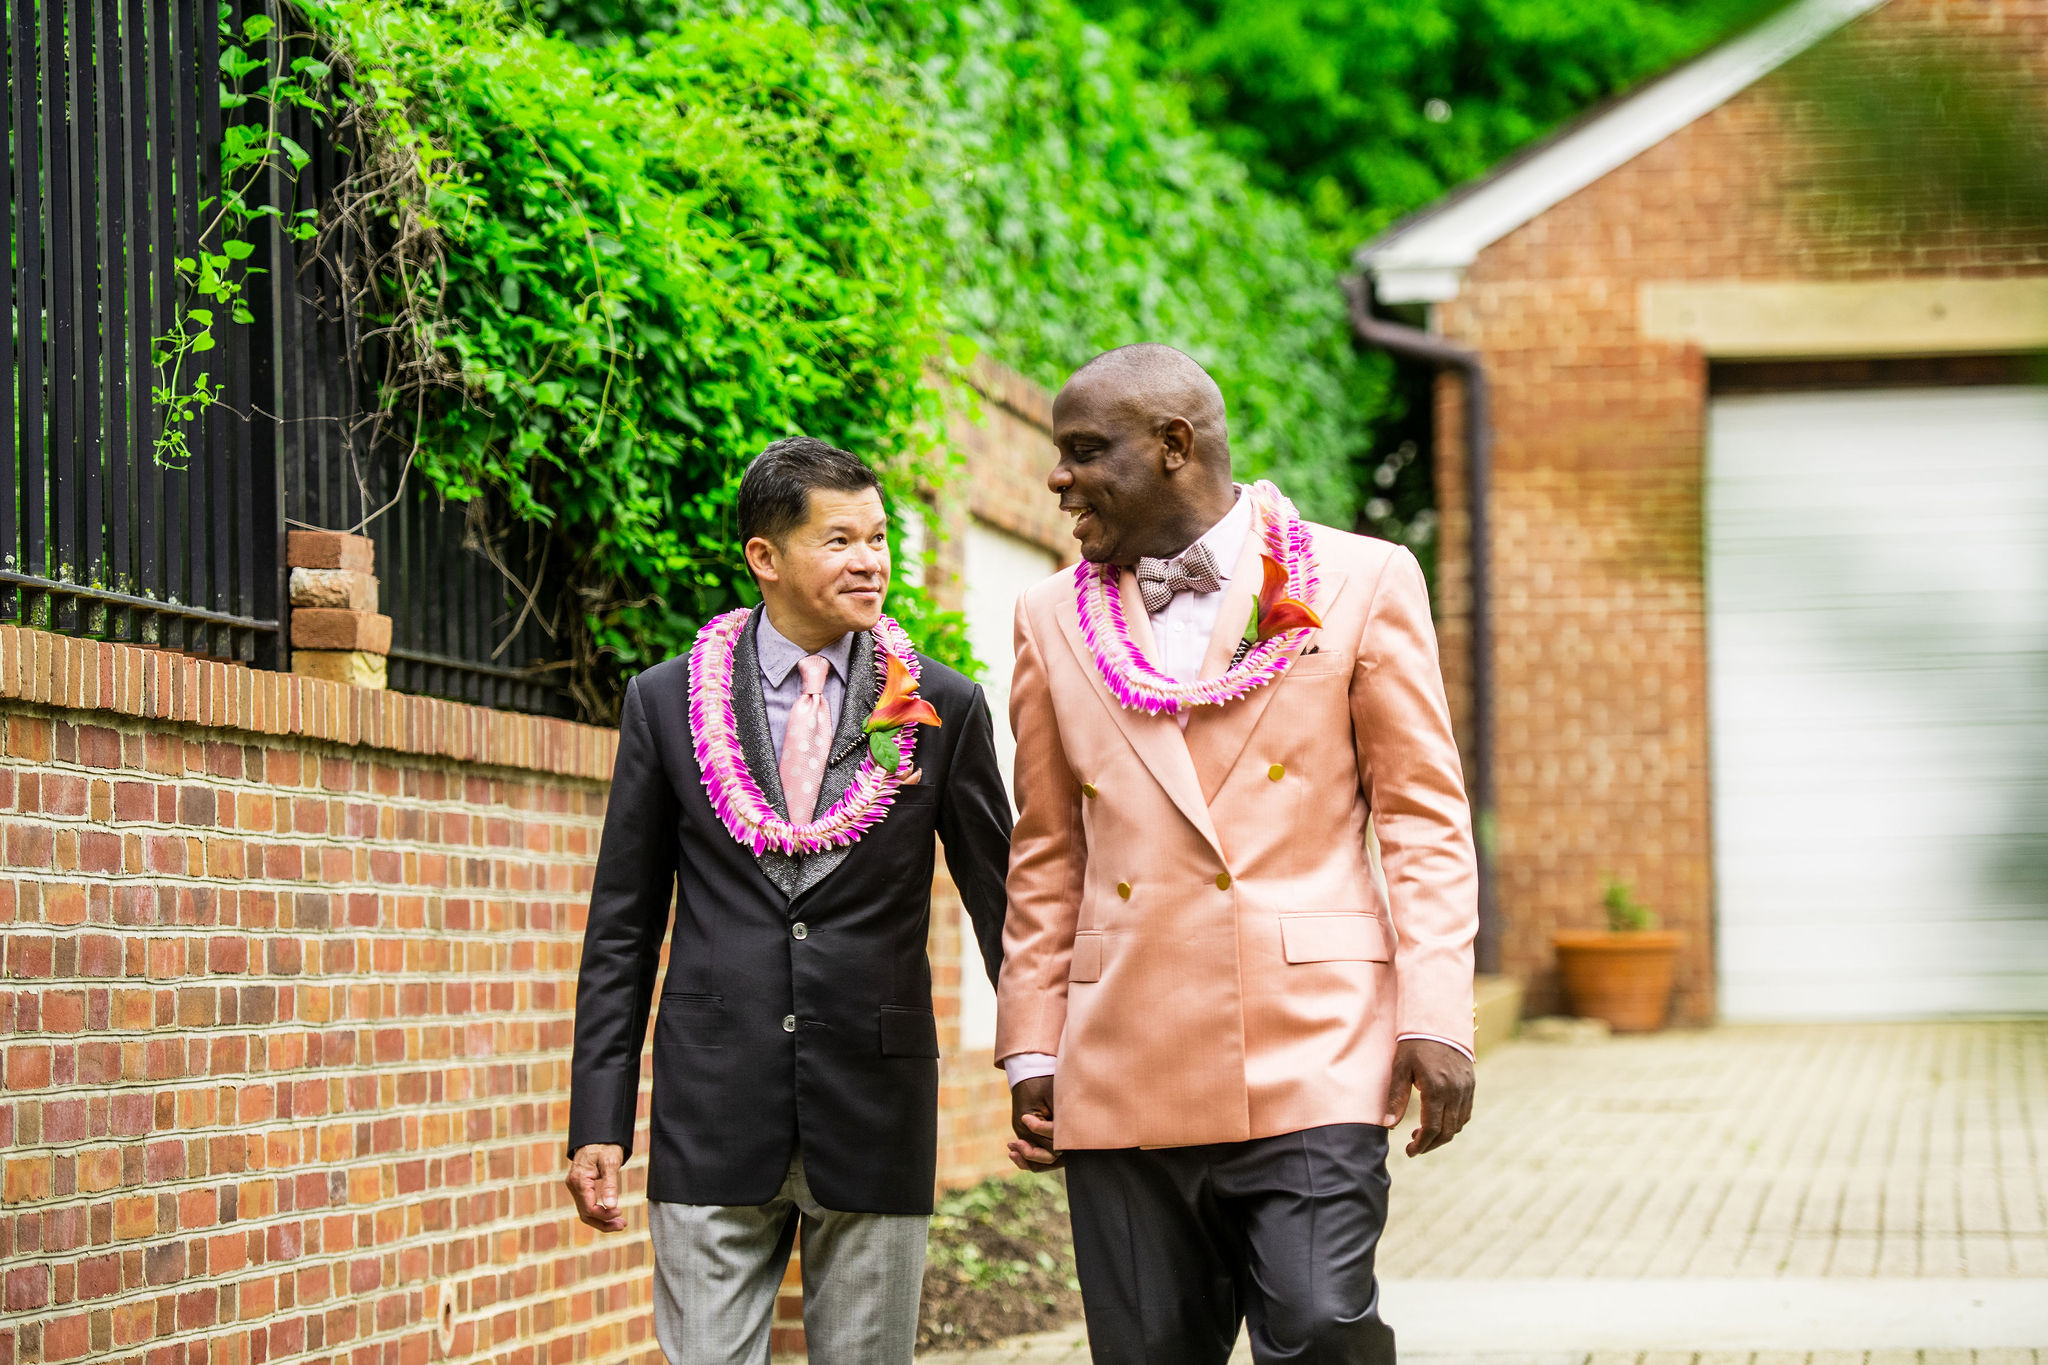 Corey&HenryWeddingPreview(43of75).jpg